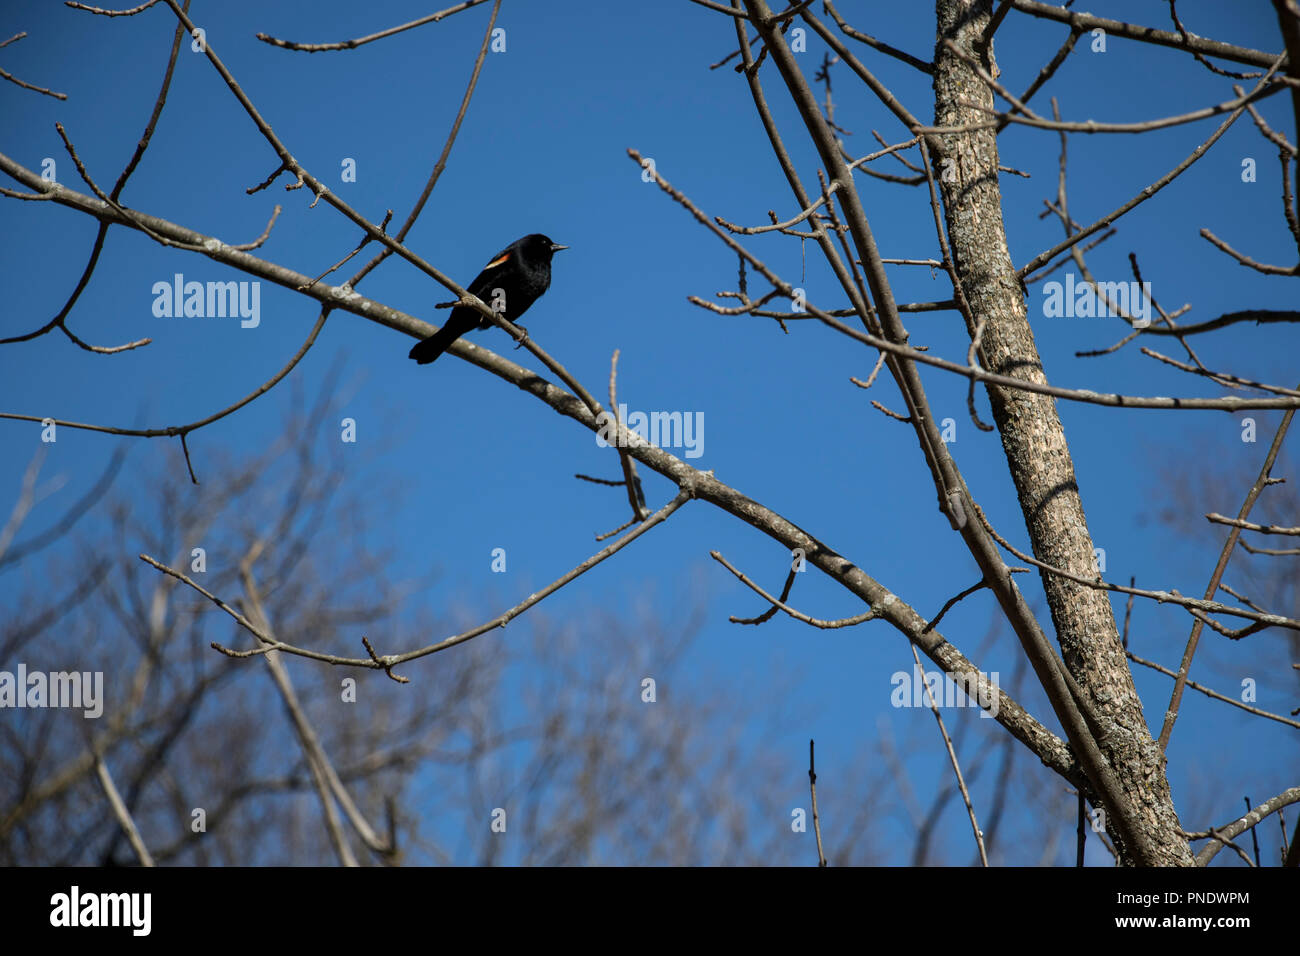 Red-Winged Blackbird perched on a bare tree branch in the forest with a clear blue sky in the background. - Stock Image